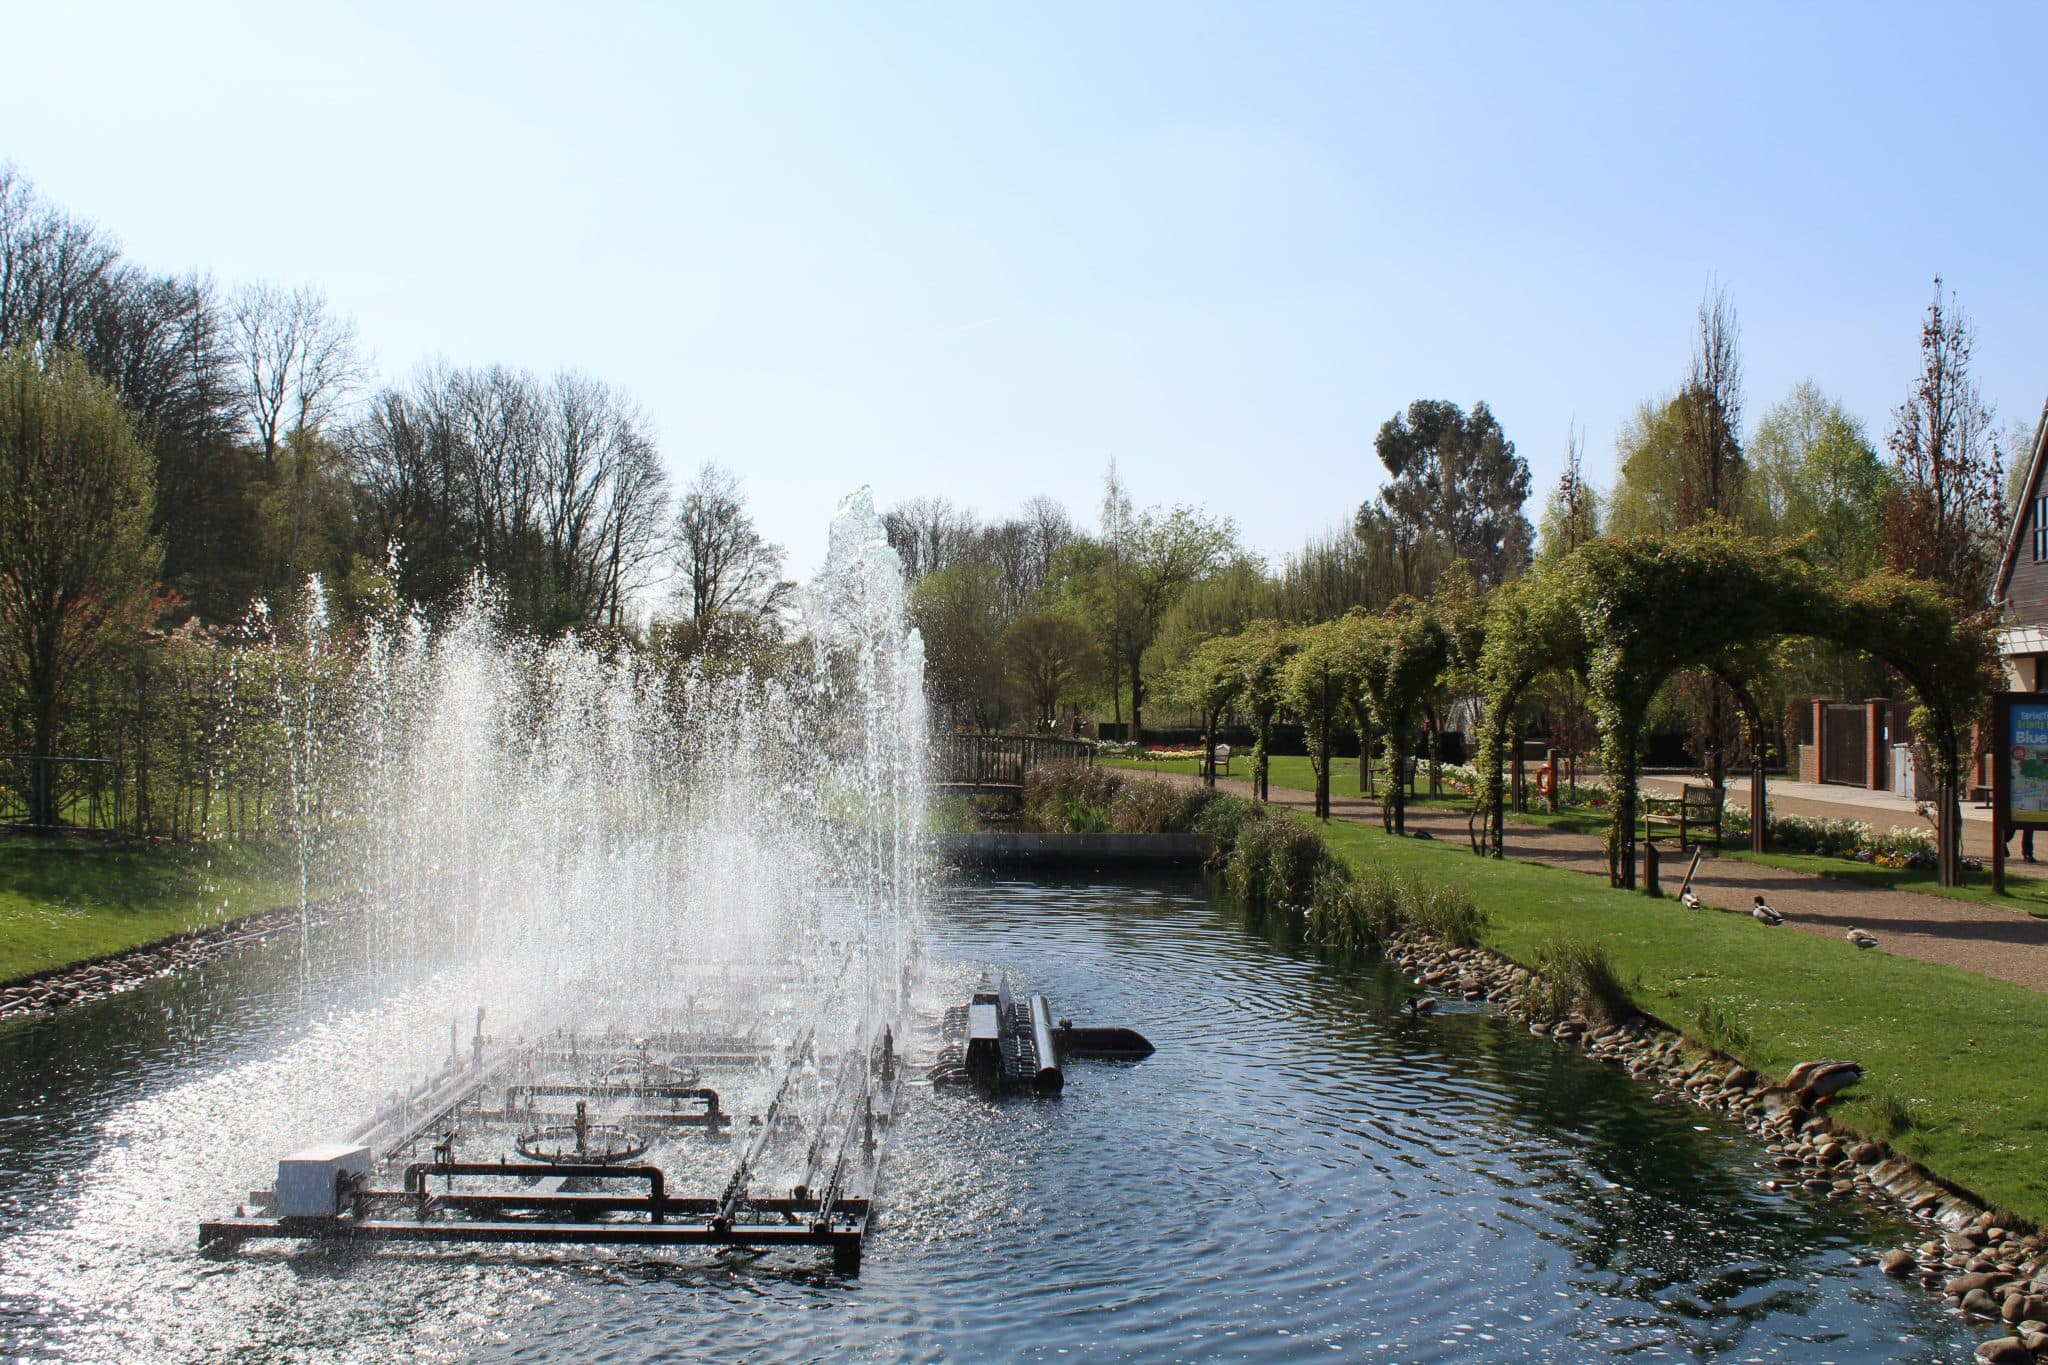 The Festival Gardens at Springfields, Spalding